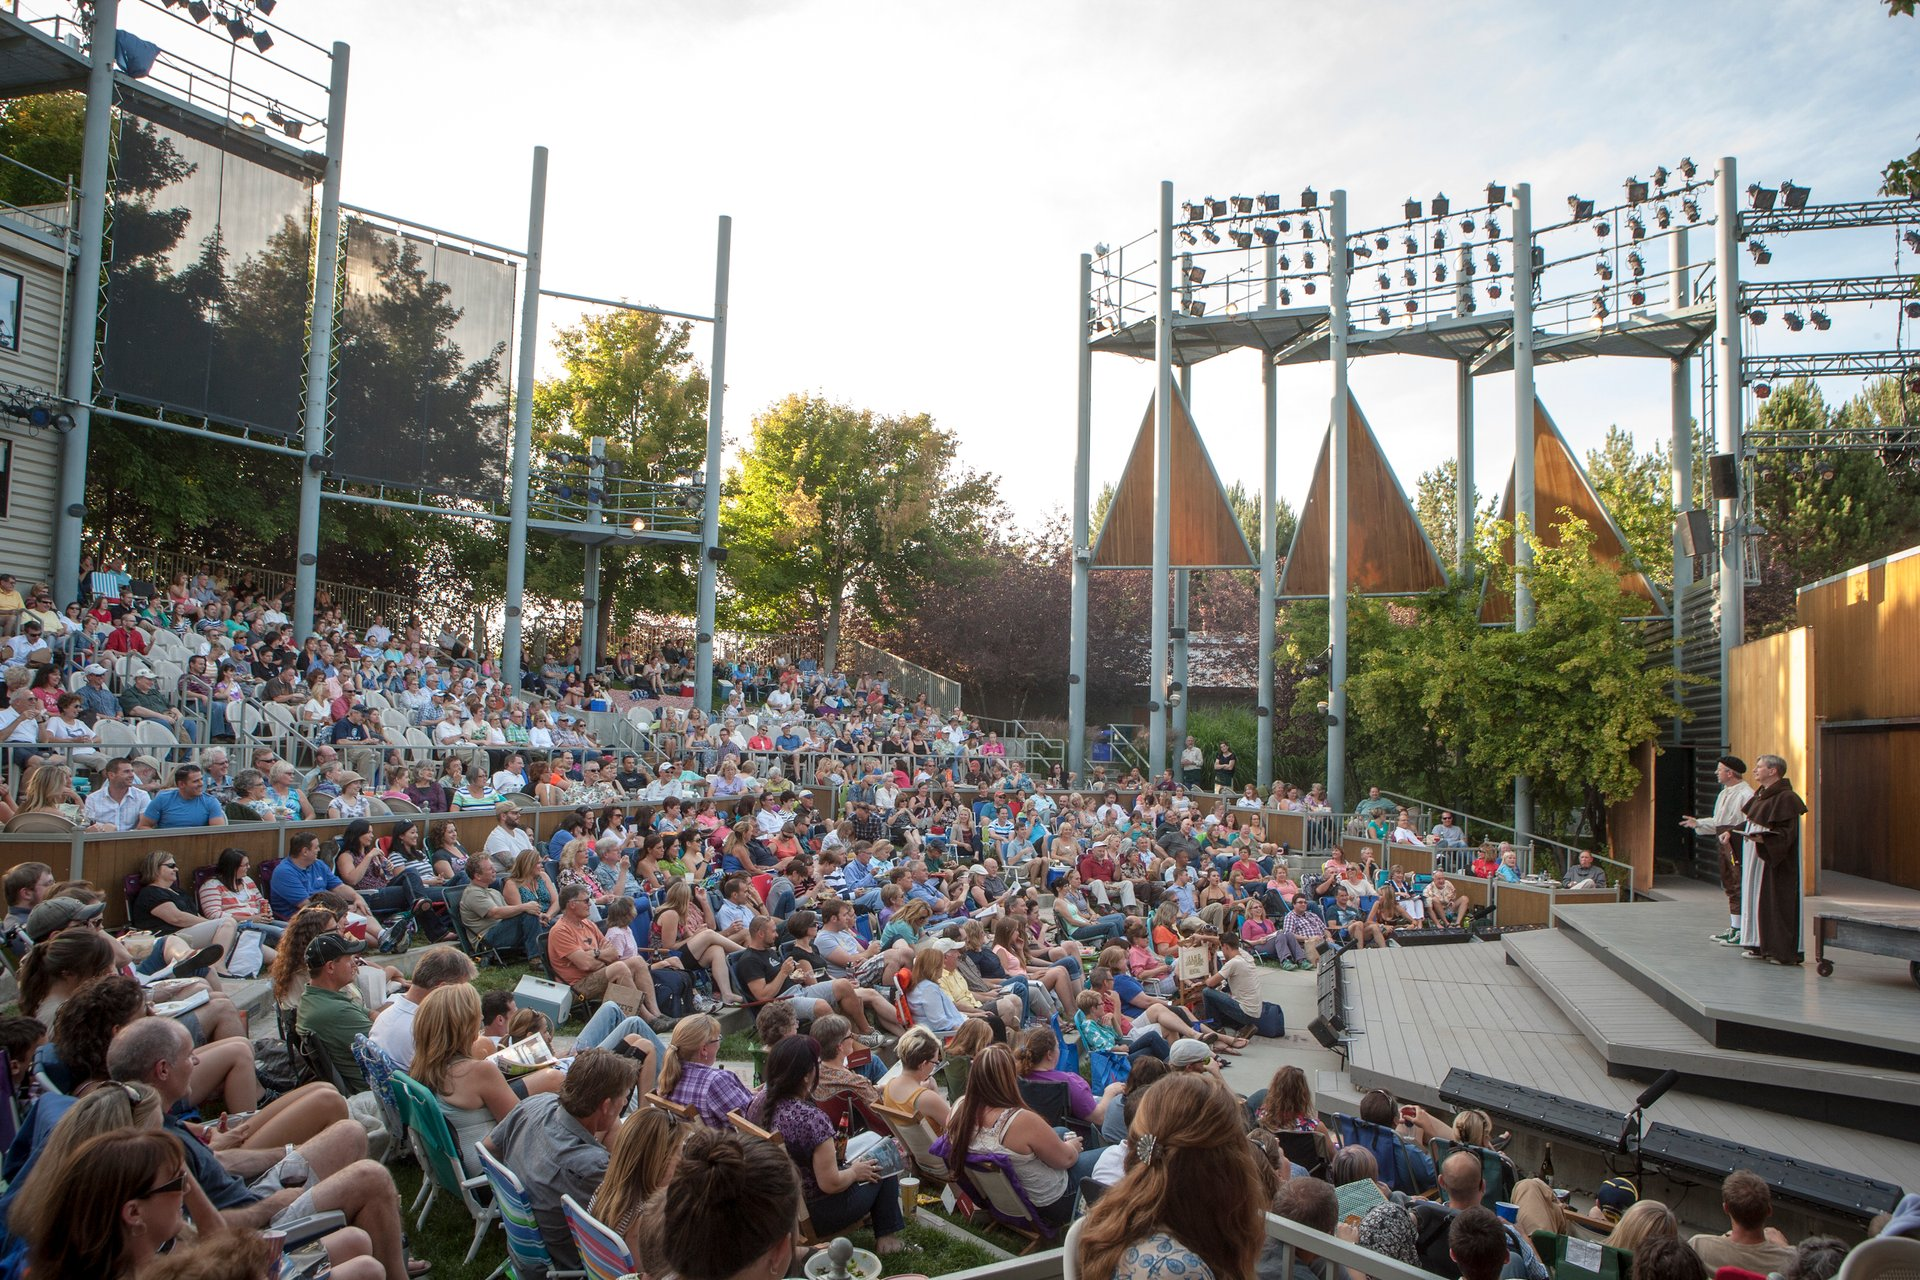 Idaho Shakespeare Festival in Idaho - Best Season 2020